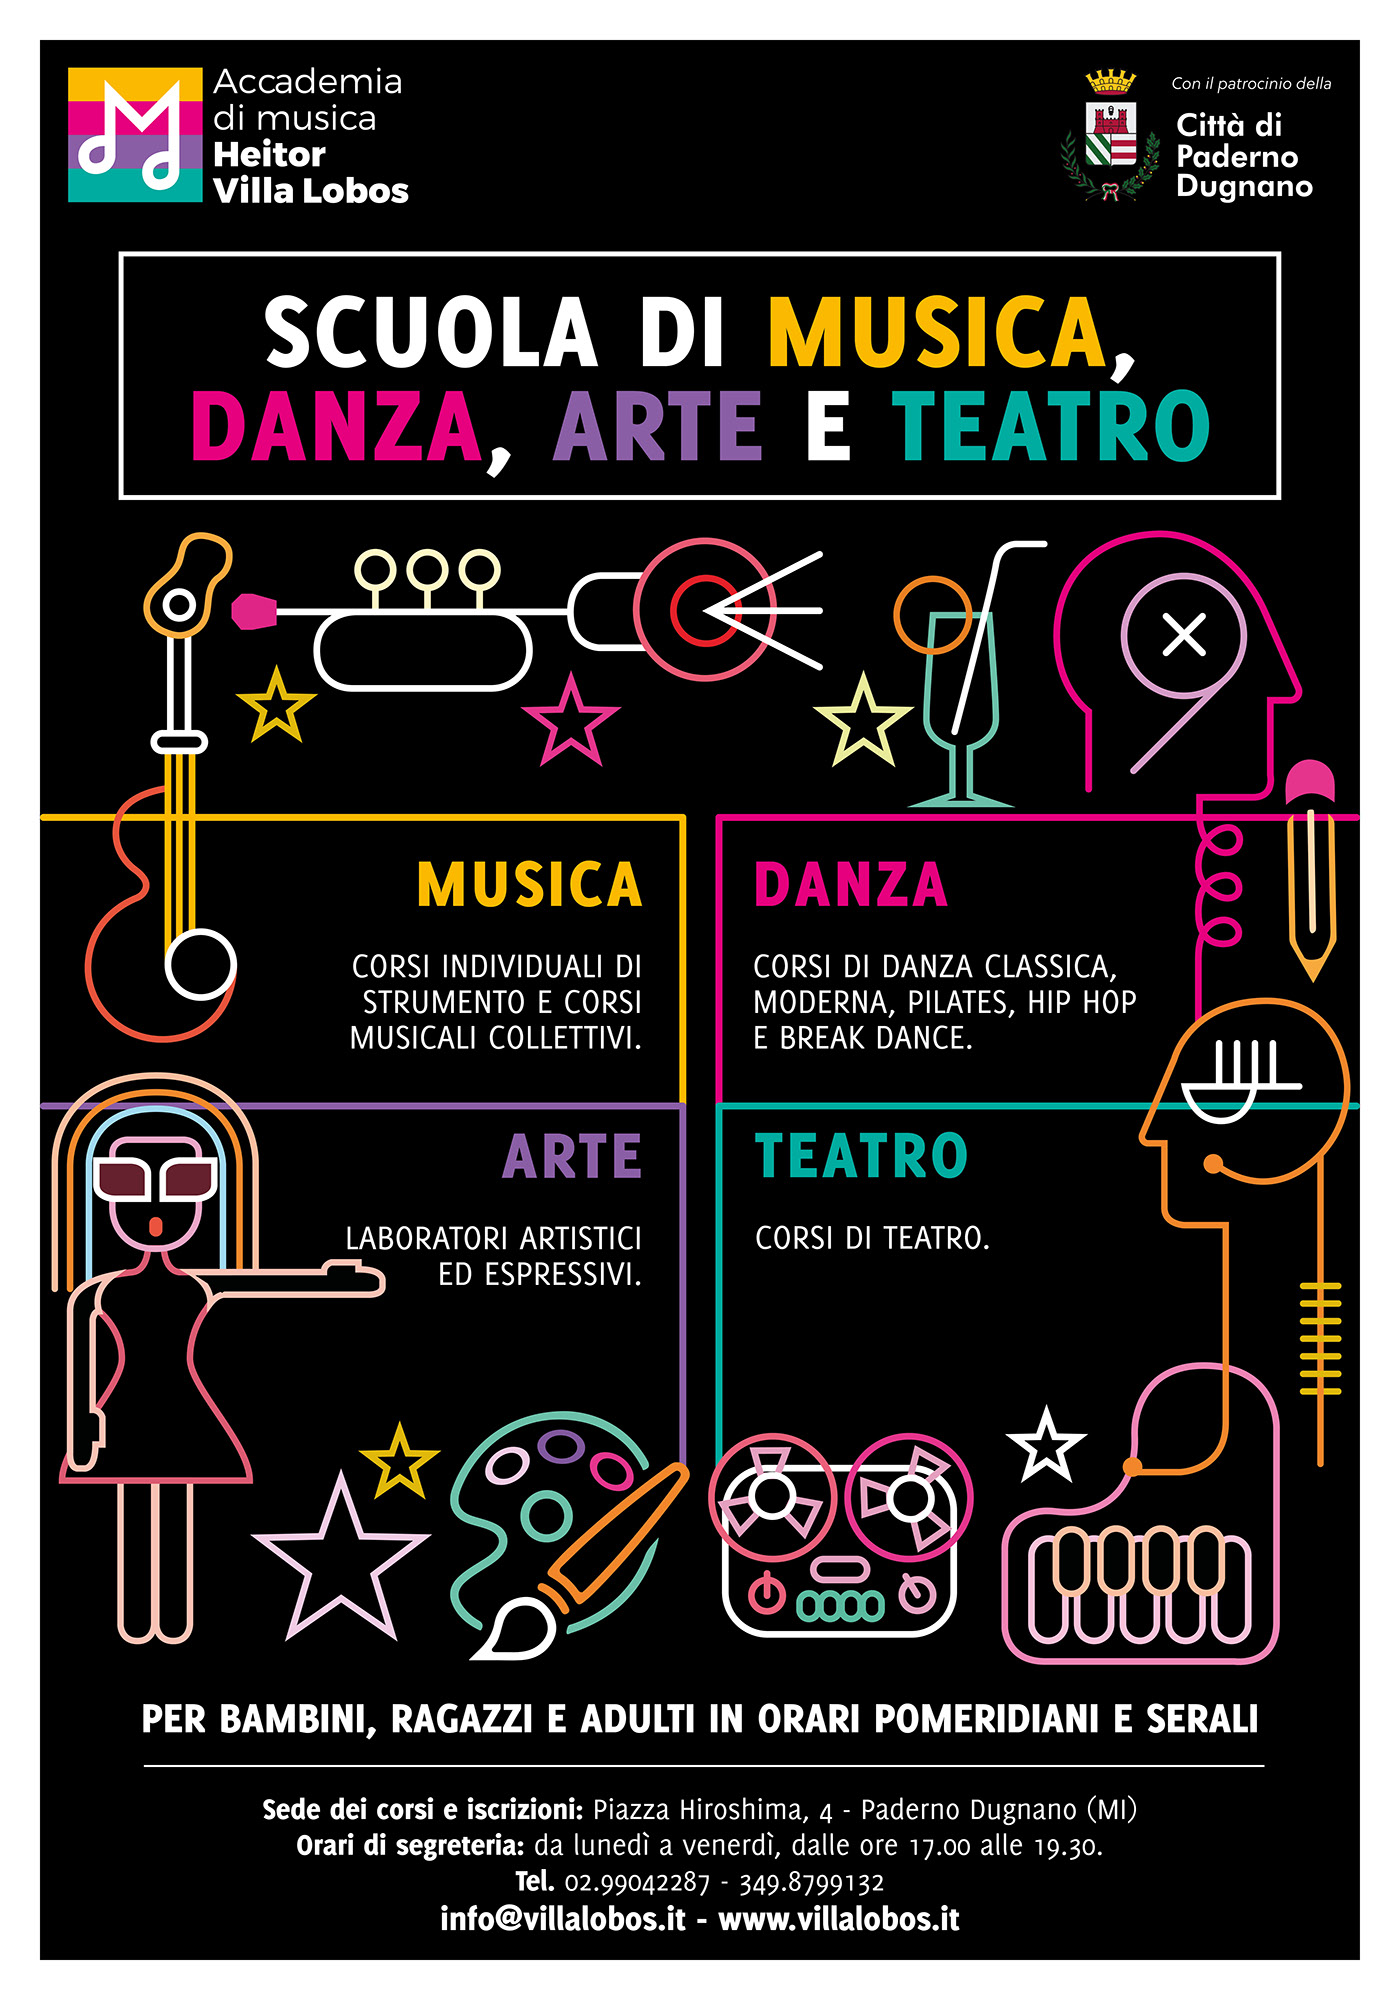 Accademia di musica Villa Lobos - Communication Design on Behance